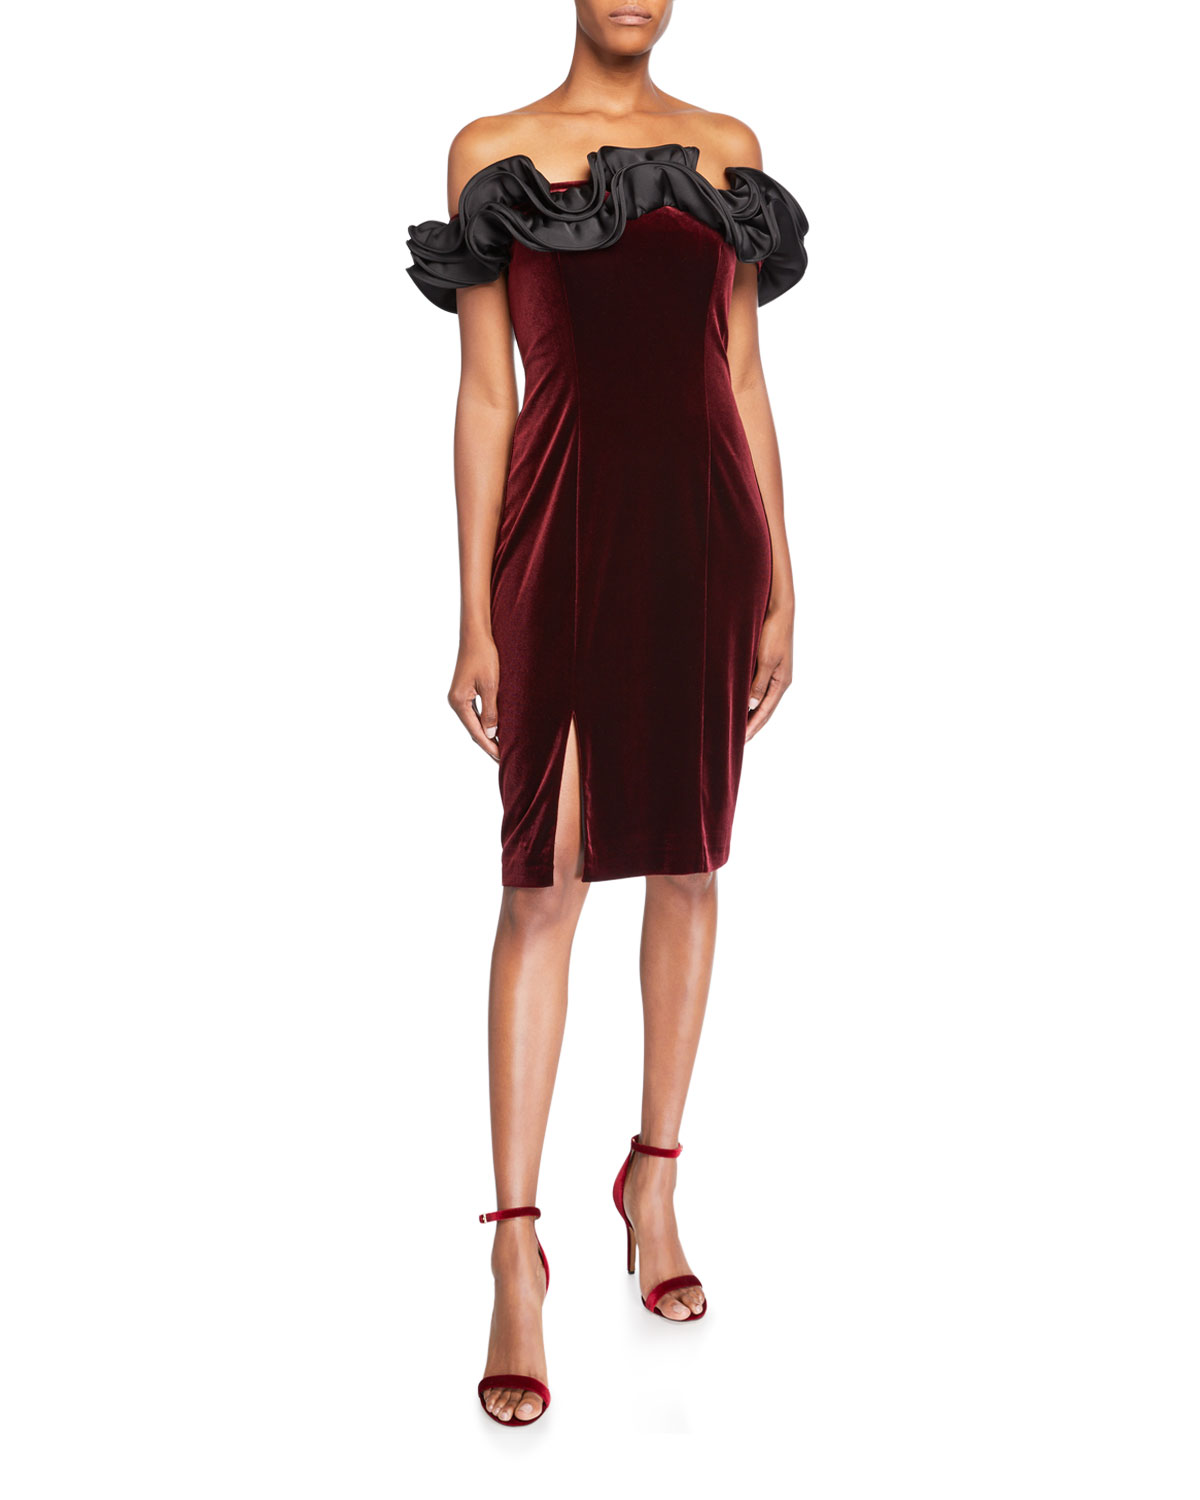 Aidan Mattox Dresses RUFFLED OFF-THE-SHOULDER VELVET COCKTAIL DRESS